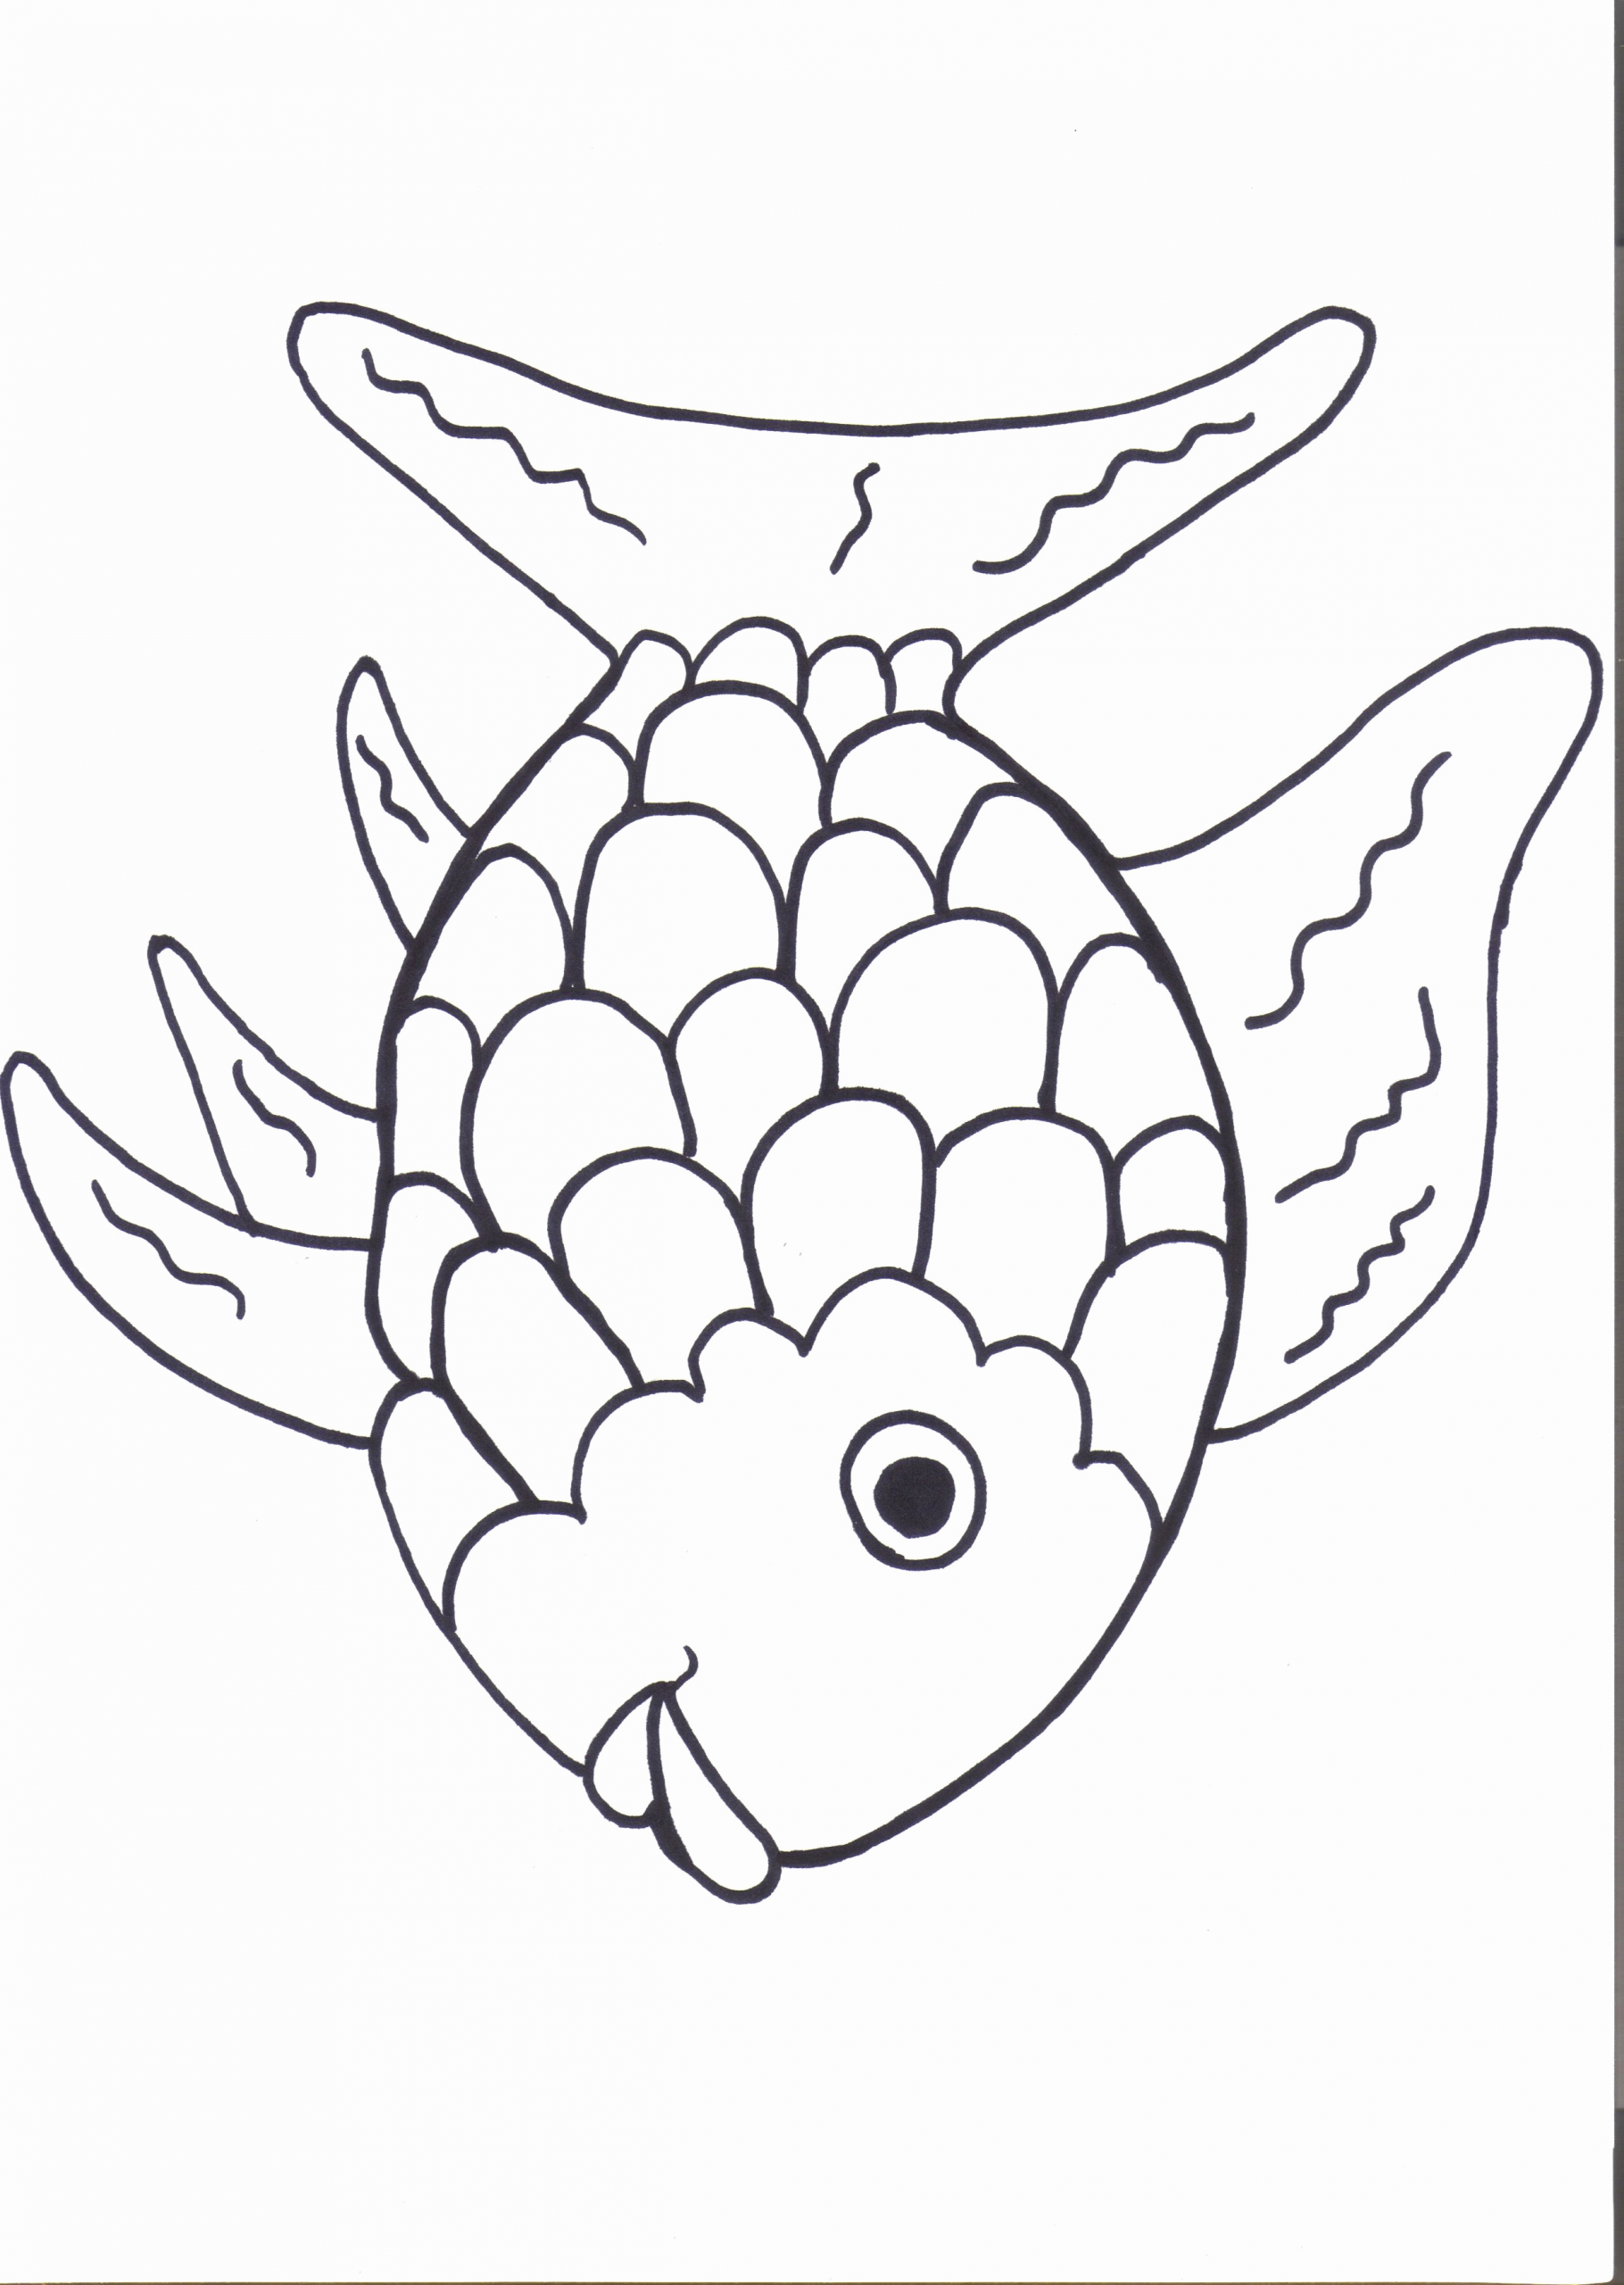 Kids Coloring Pages Detailed Fish In 2020 Rainbow Fish Coloring Page Rainbow Fish Crafts Fish Coloring Page